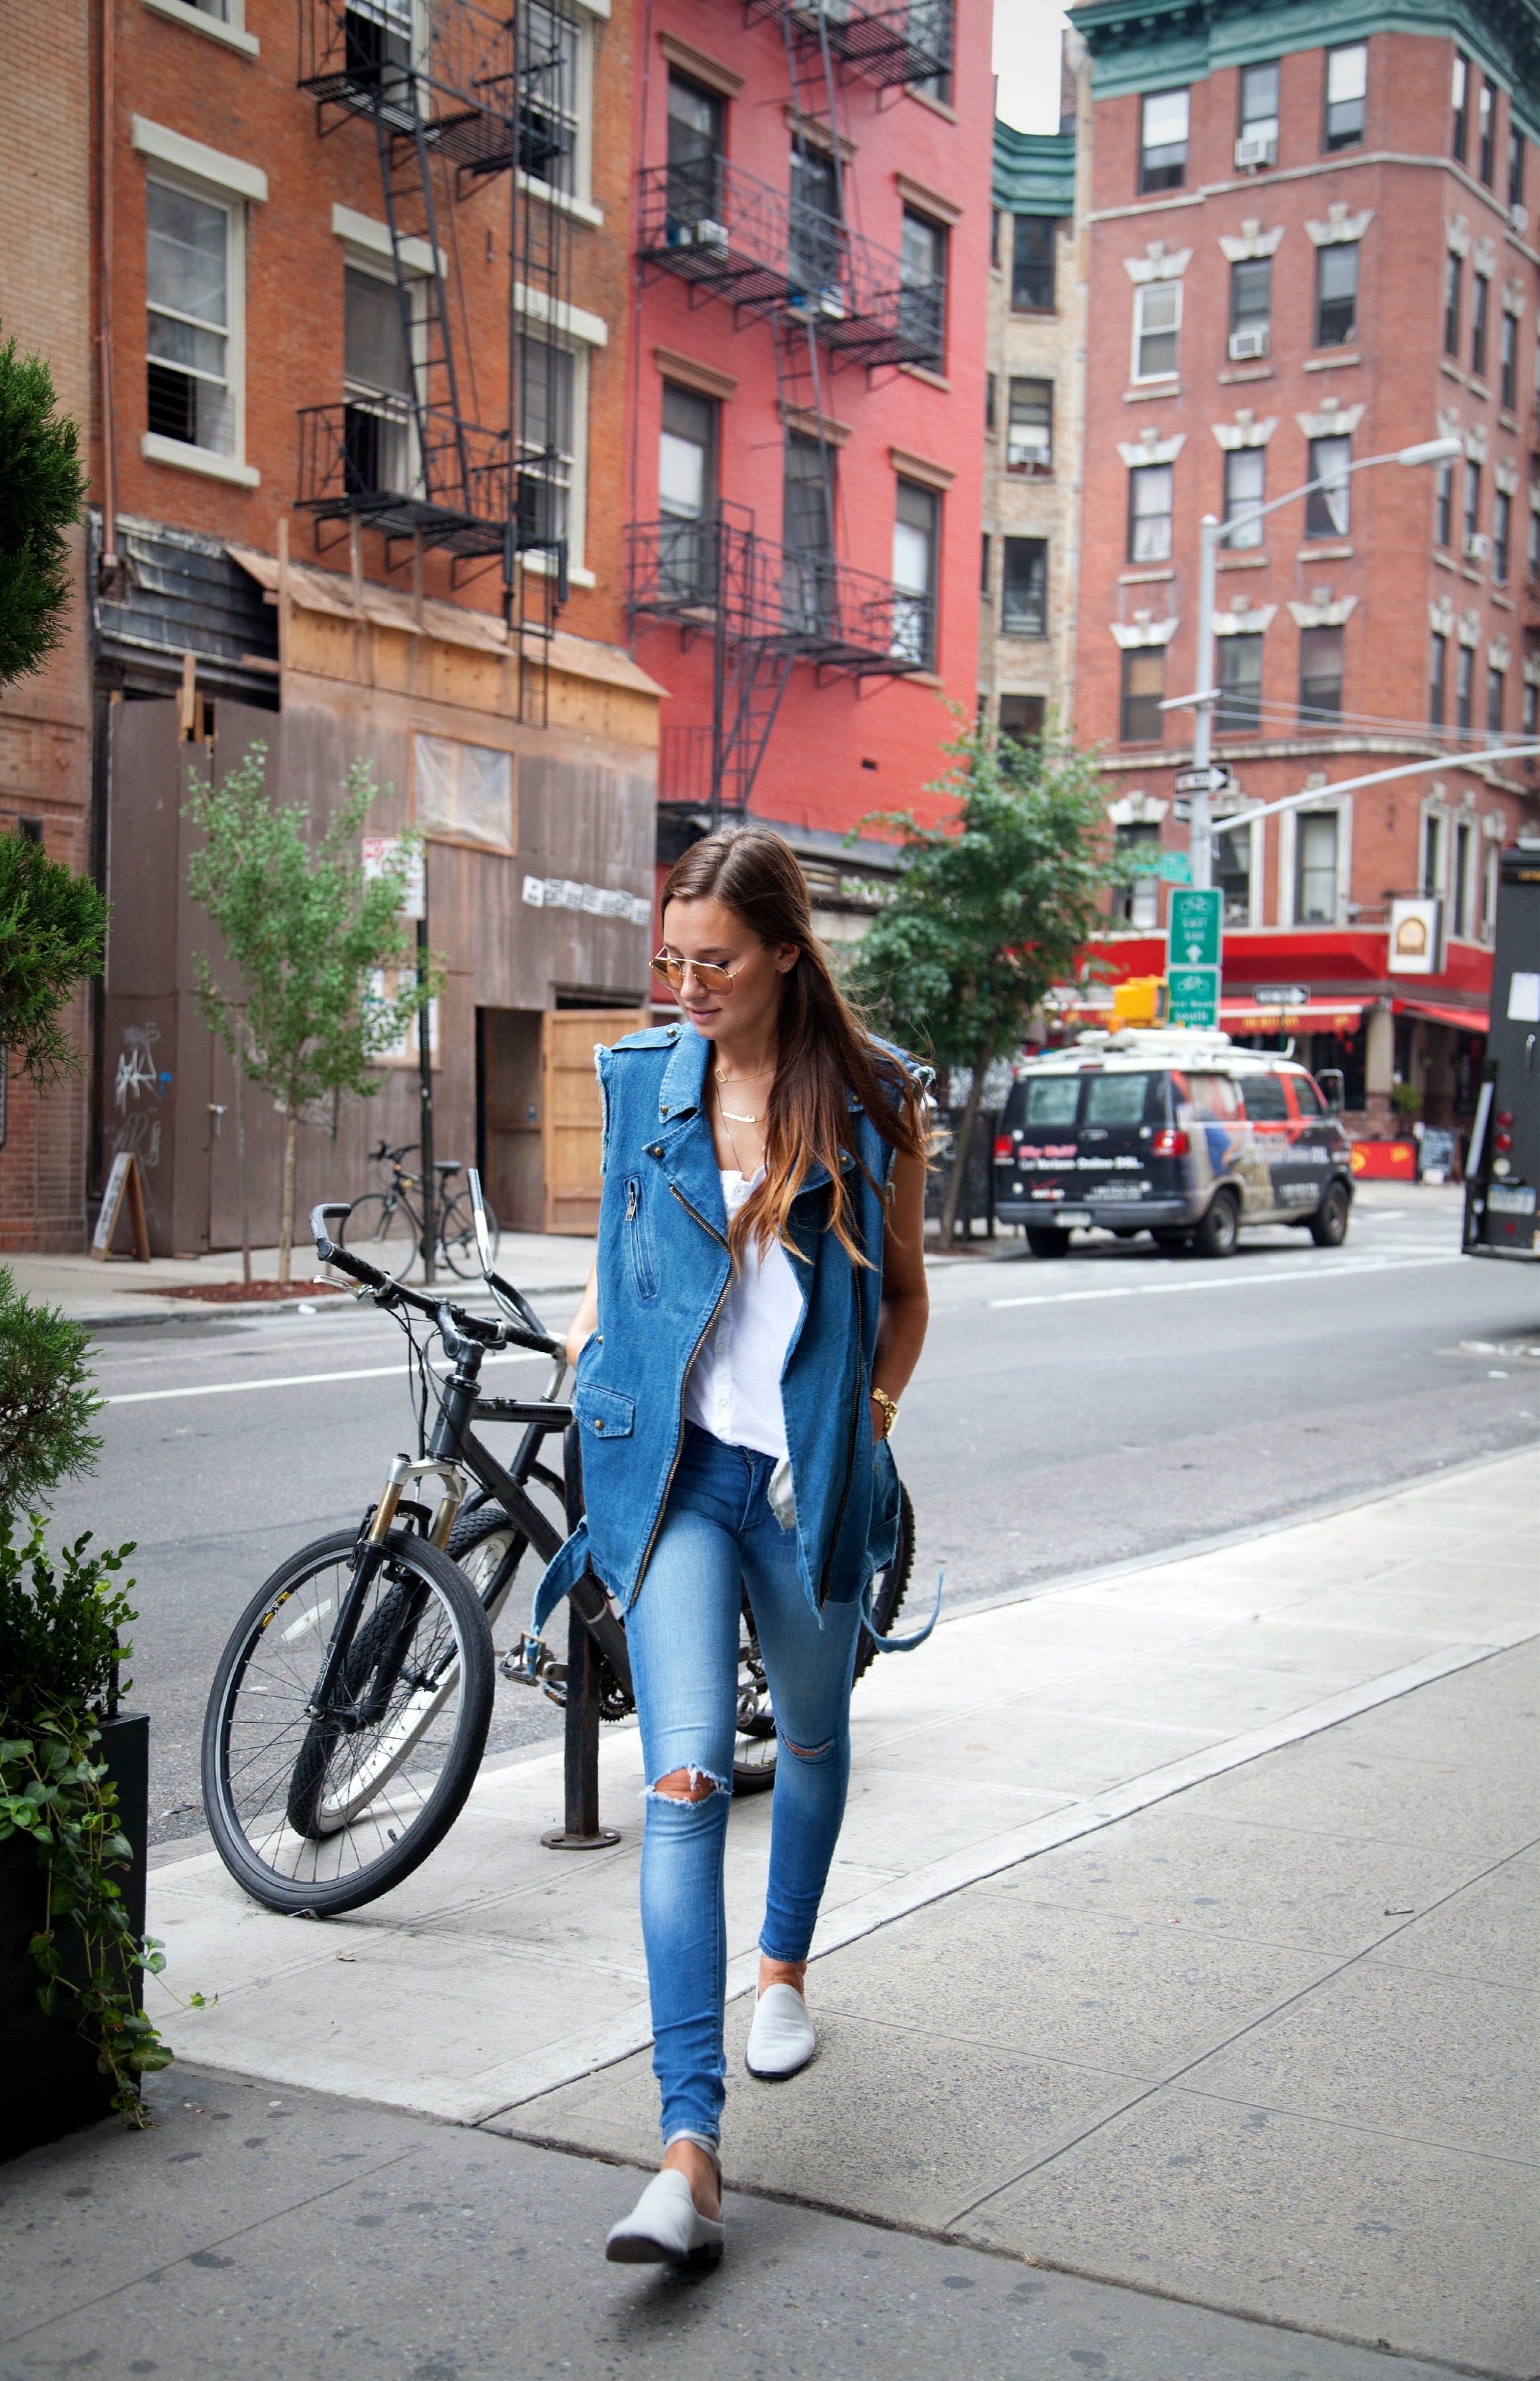 TREND denim on denim - double denim - OOTD Magazine 27